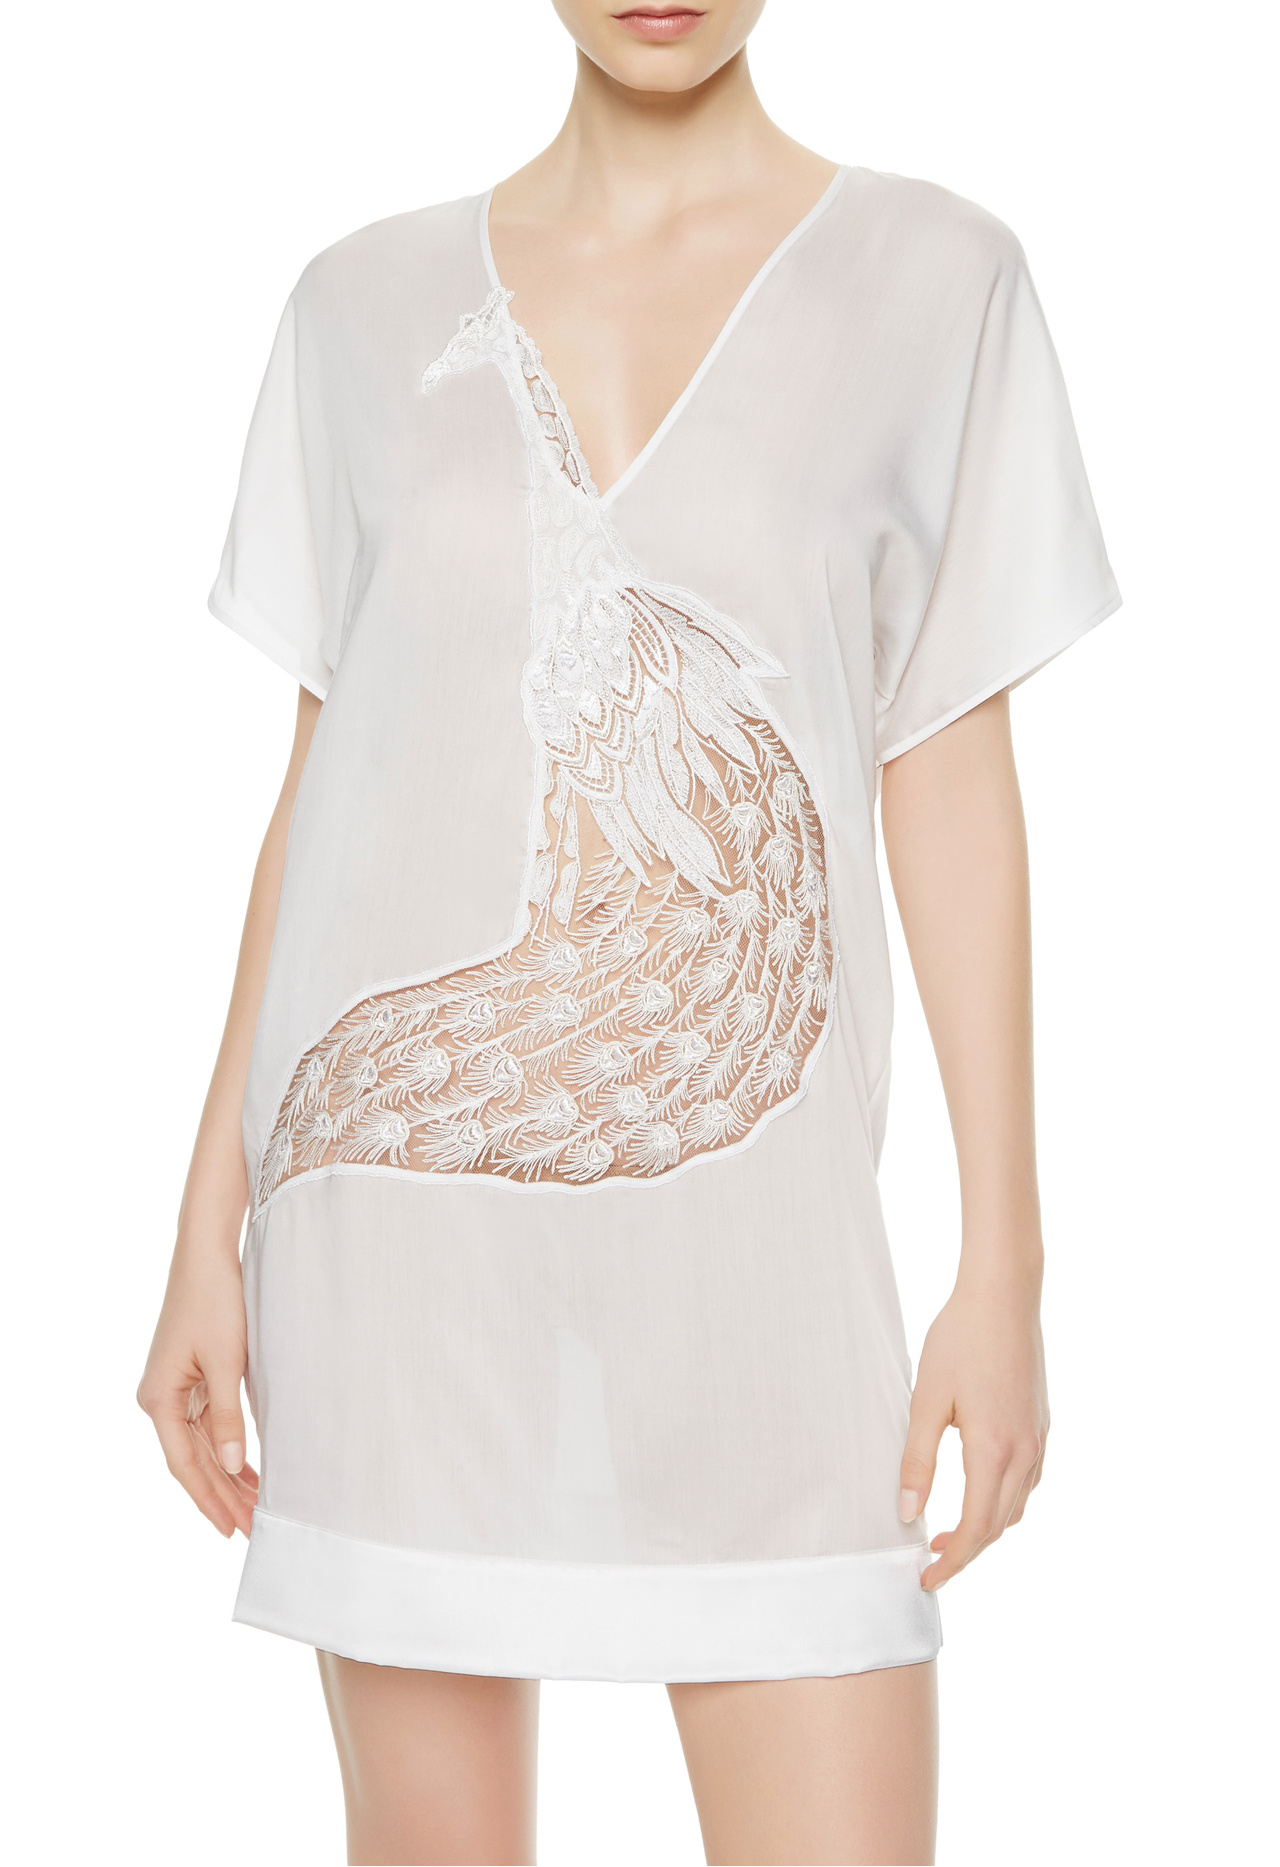 La Perla Edenic tunic top